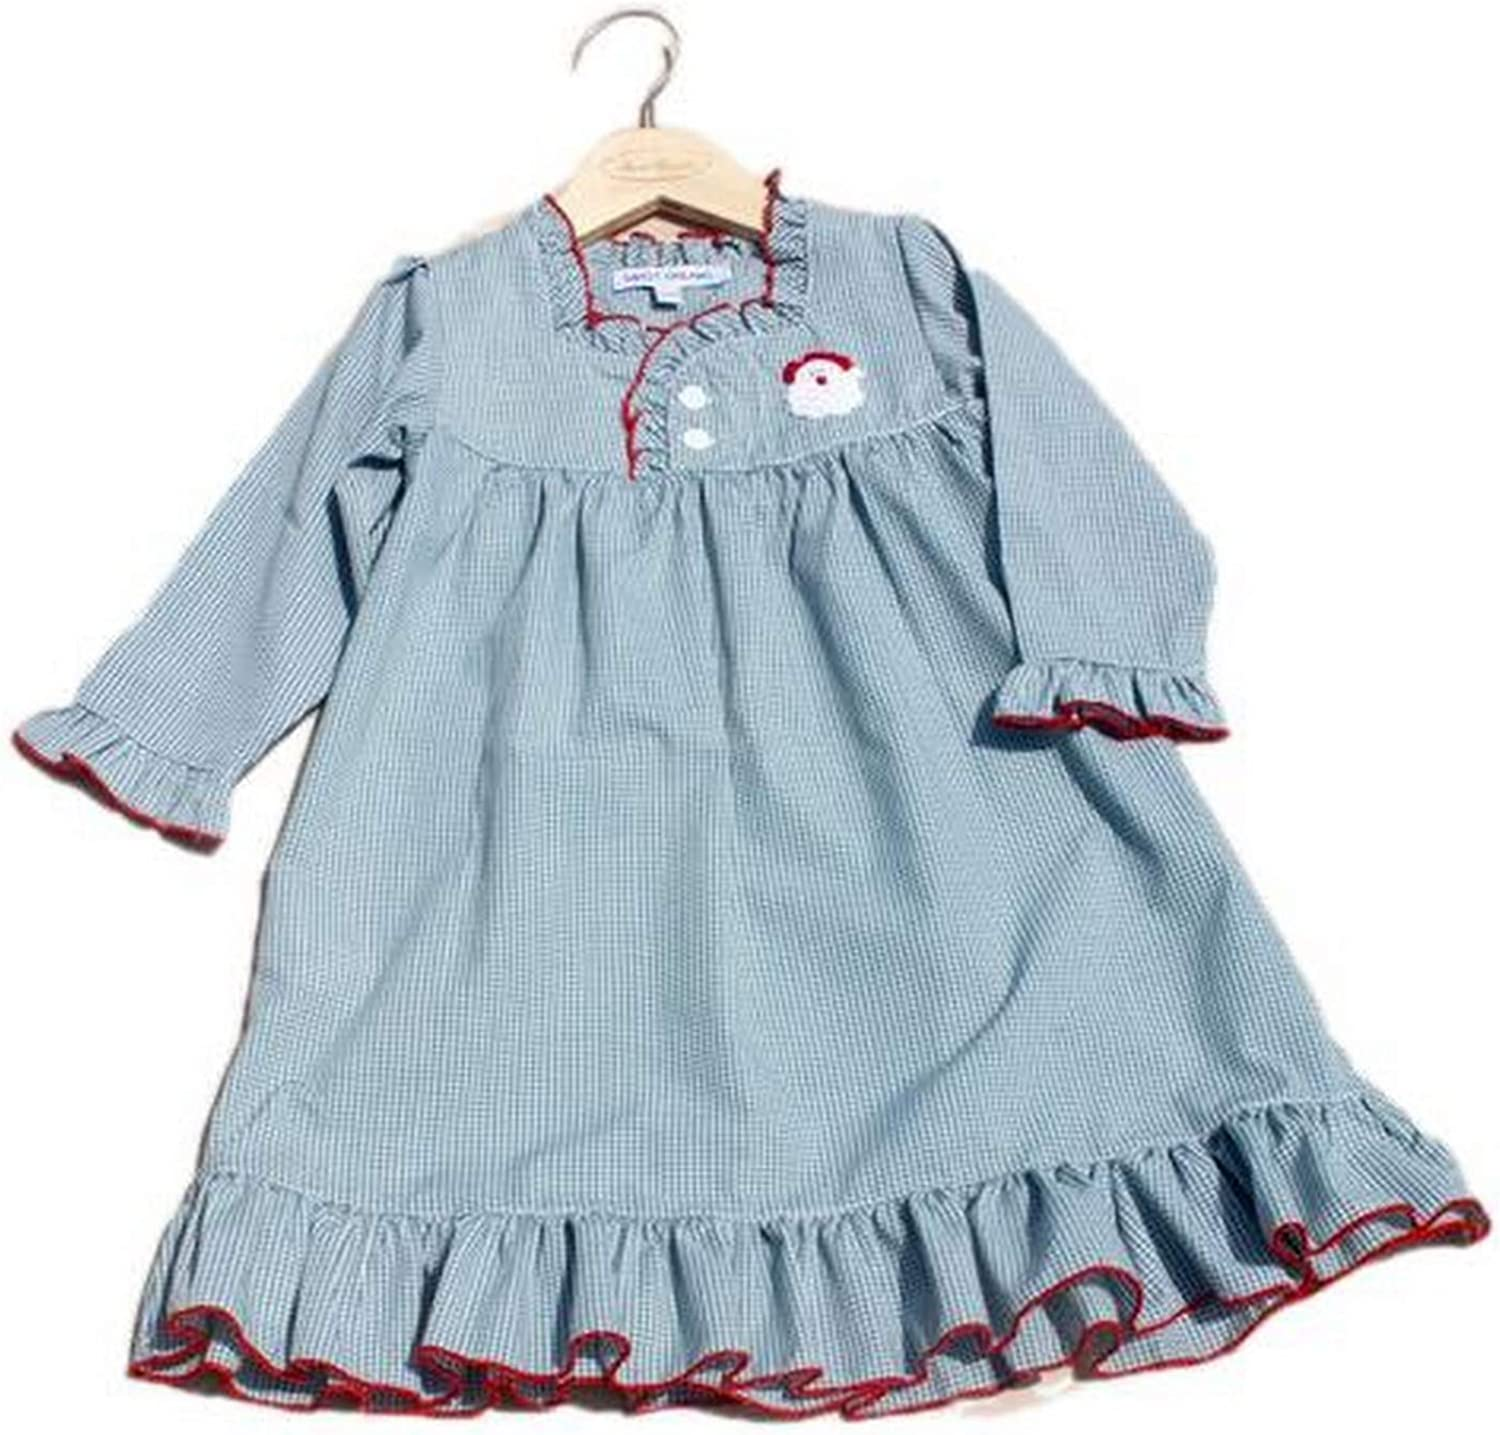 Sweet Dreams Santa Embroidered Green Gingham Checked Christmas Girls Nightgown